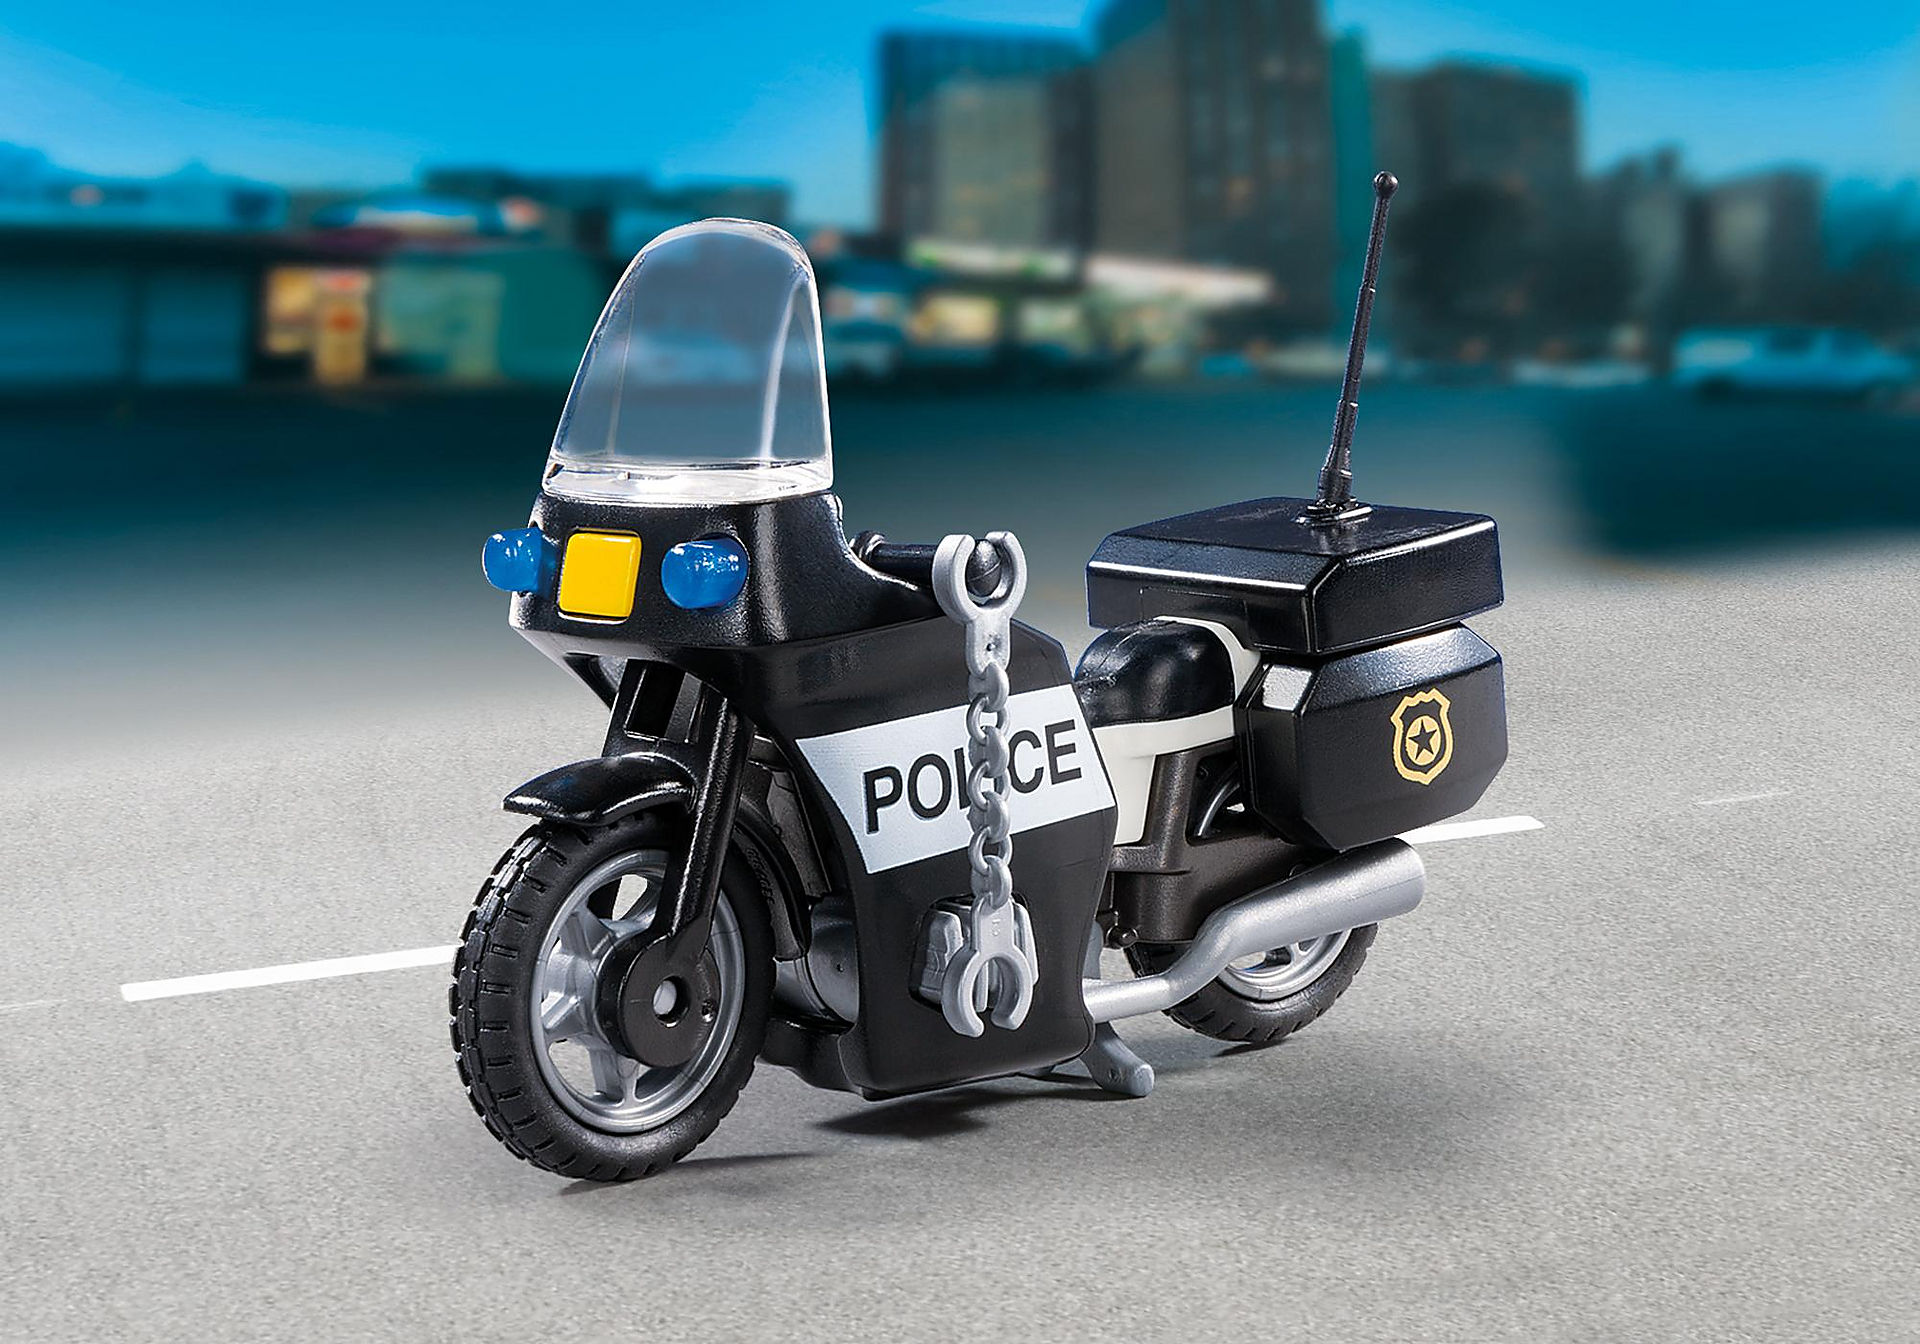 5648 Police Carry Case zoom image4